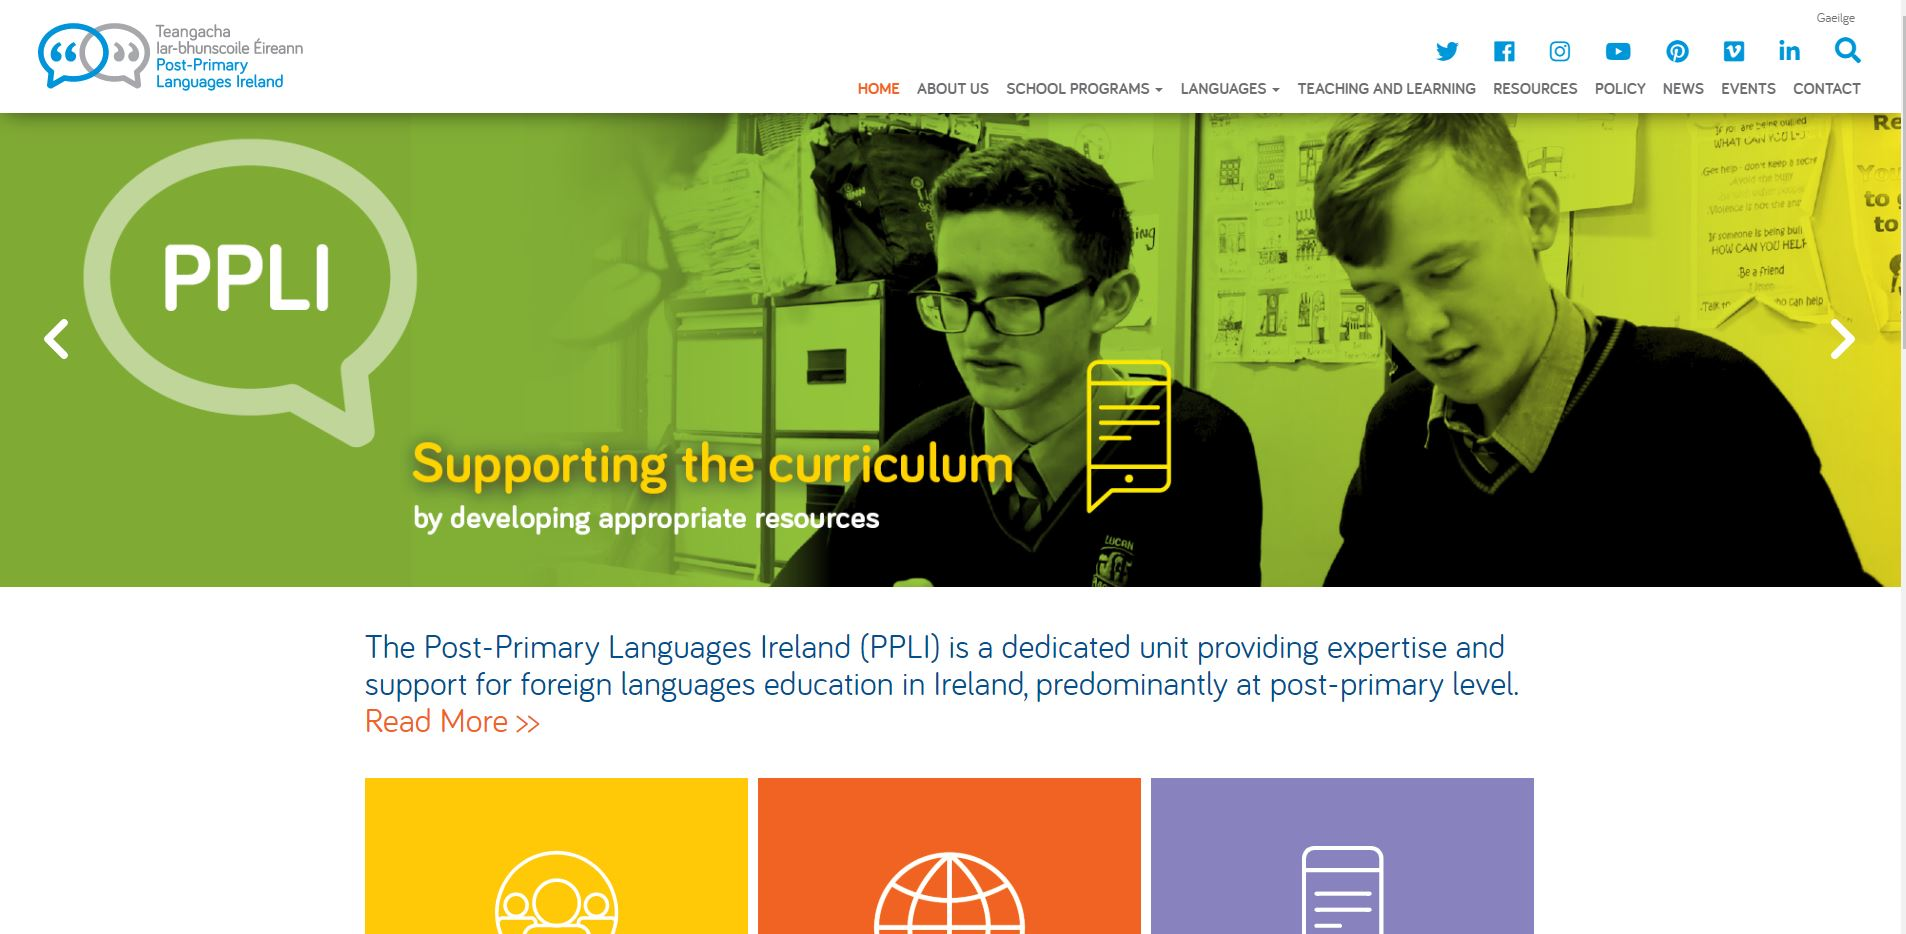 Post-Primary Languages Ireland